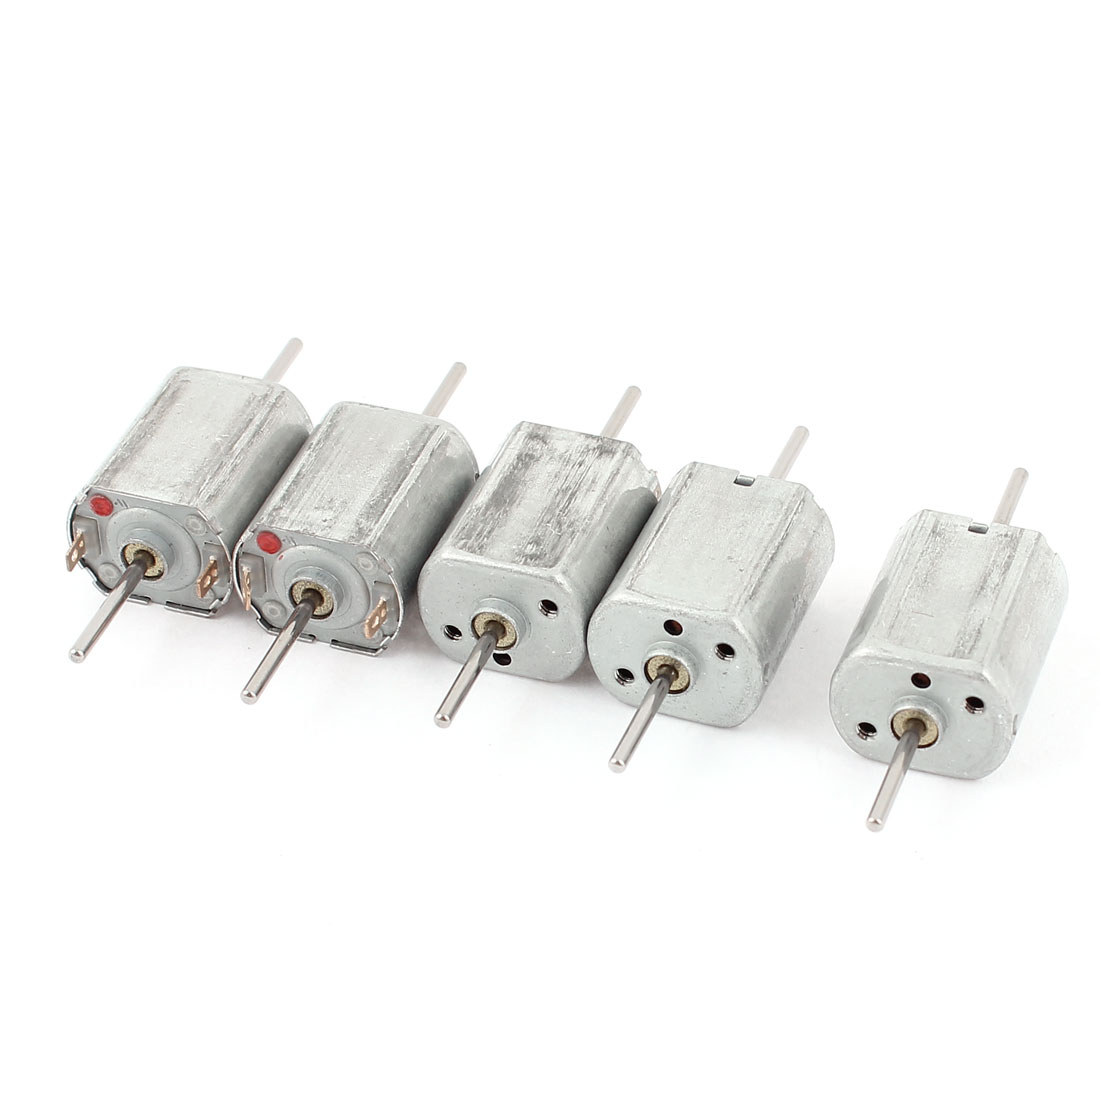 5pcs 12V 13500 RPM Speed 1.5mm Shaft Doublel Axle Cylinder Magnetic Mini Electric DC Motor for DIY Toy